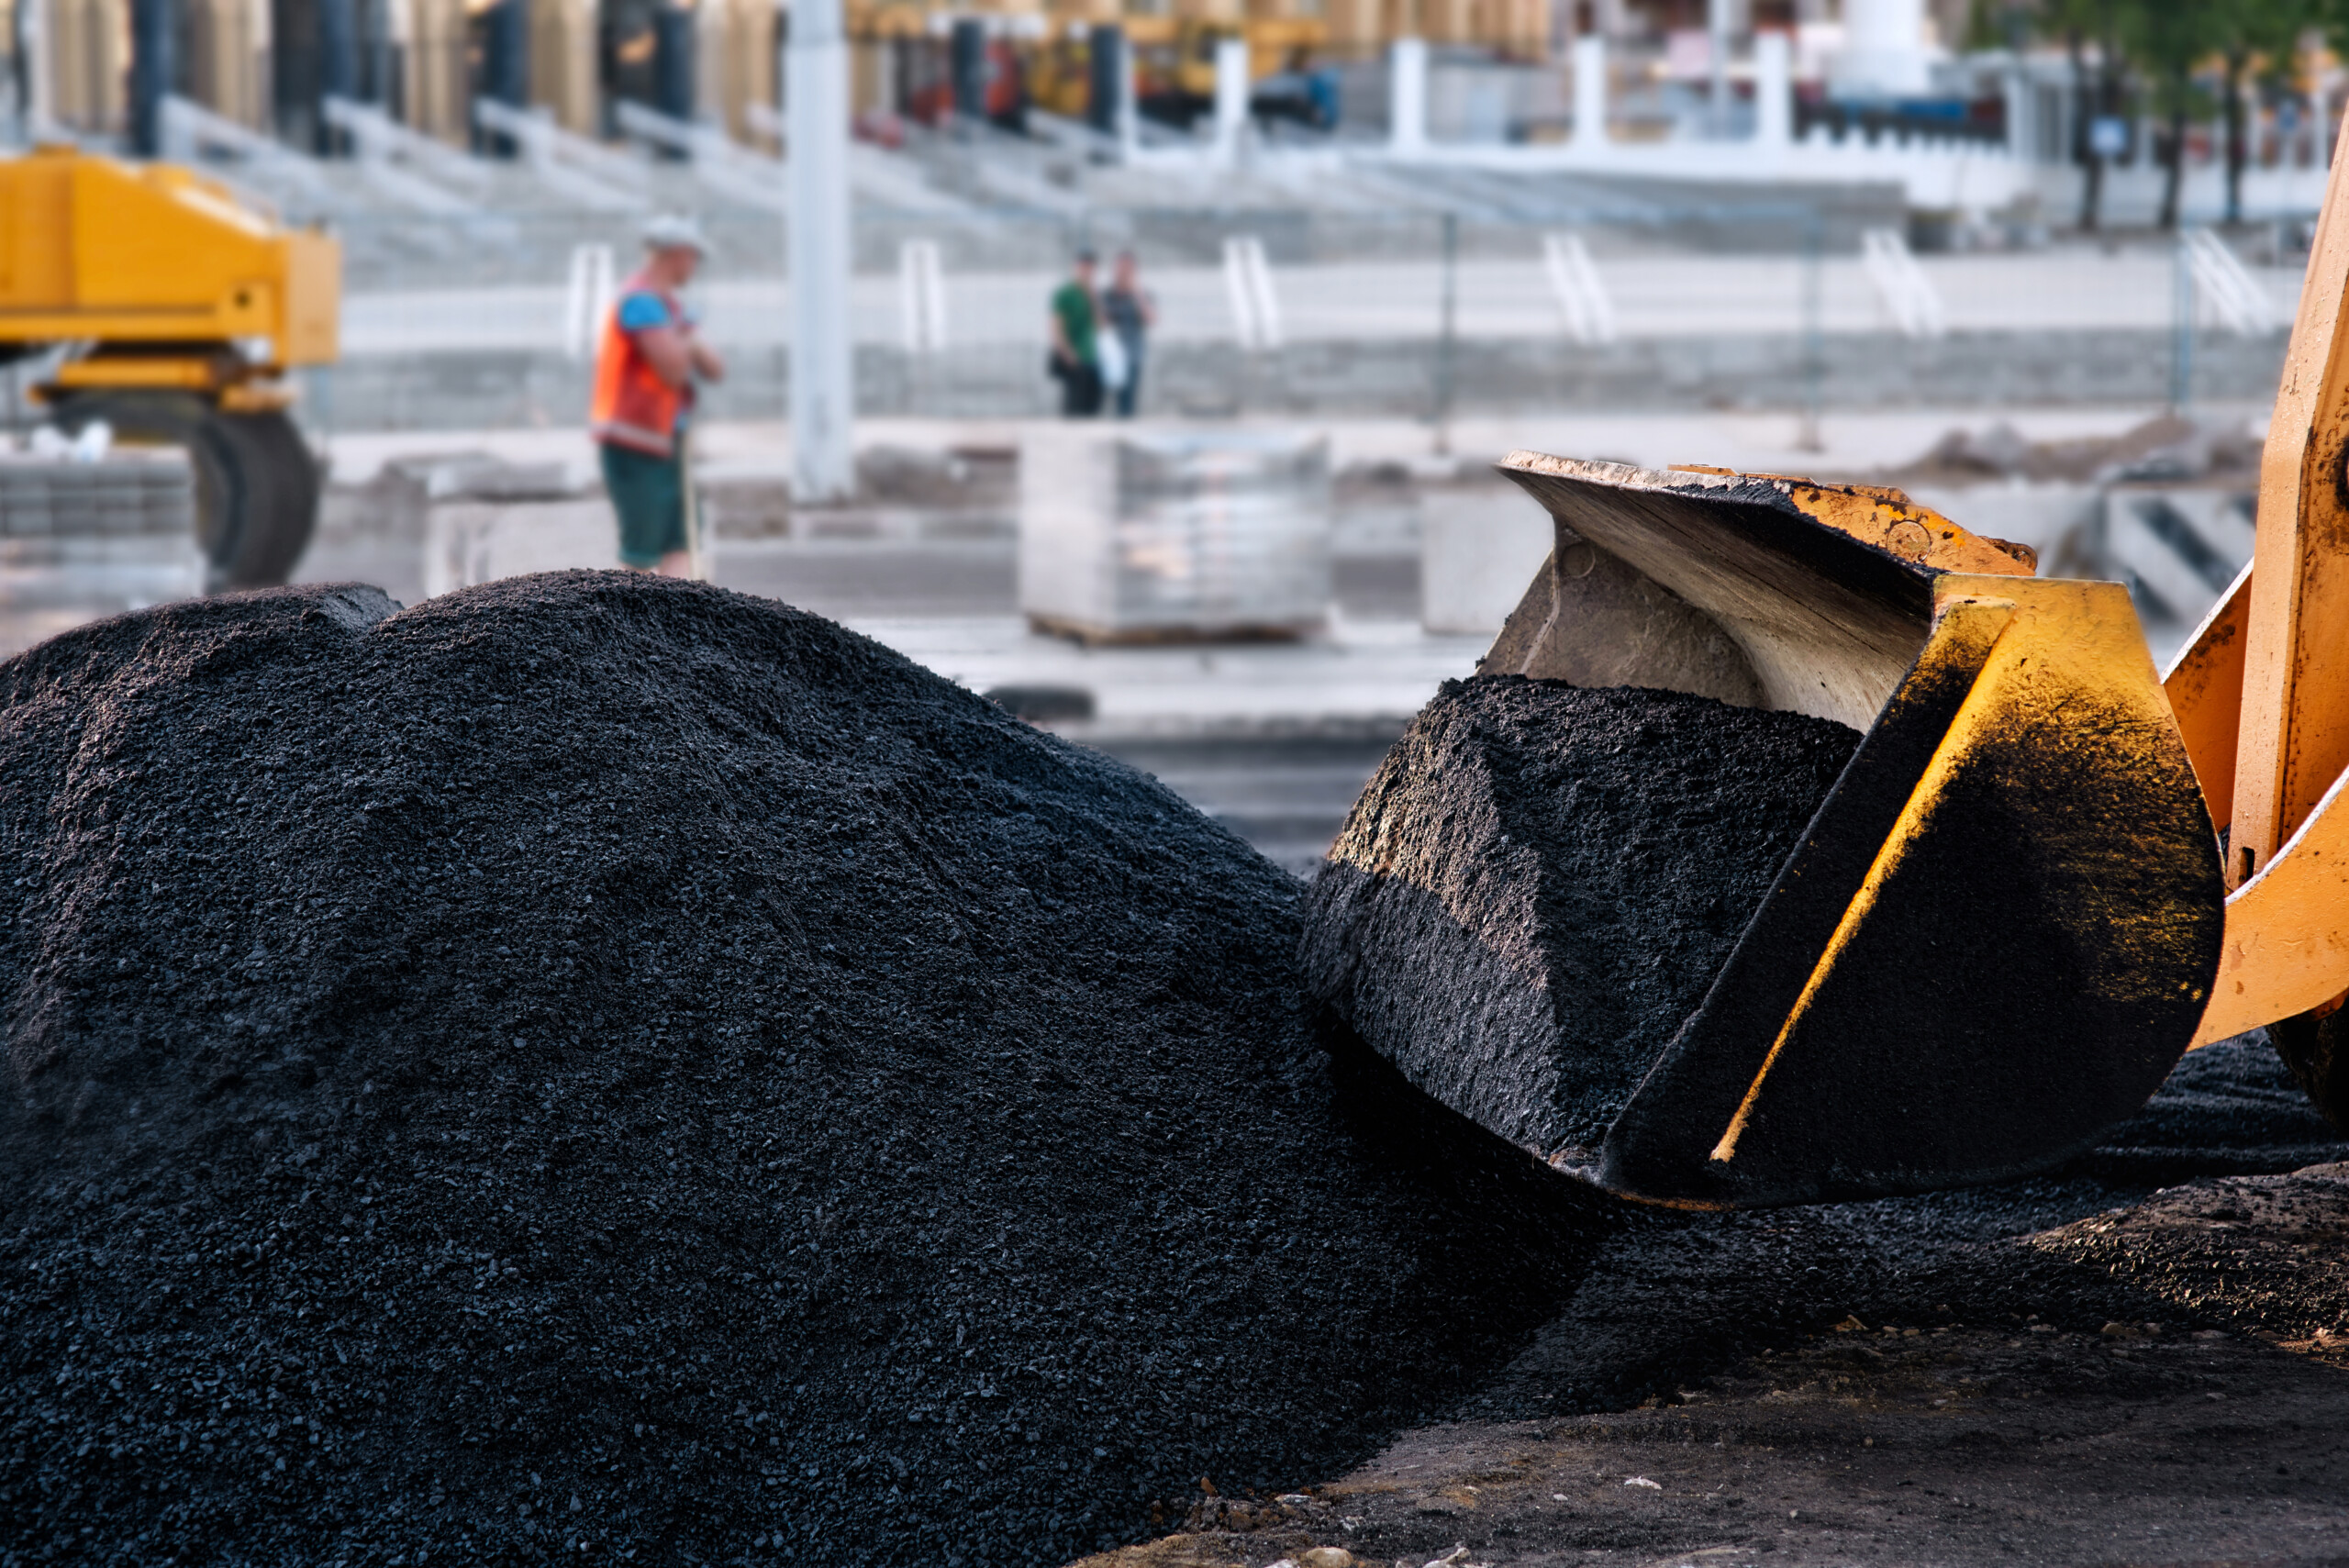 Causes of Tar Black Vomit: It's Old Blood, but Why?